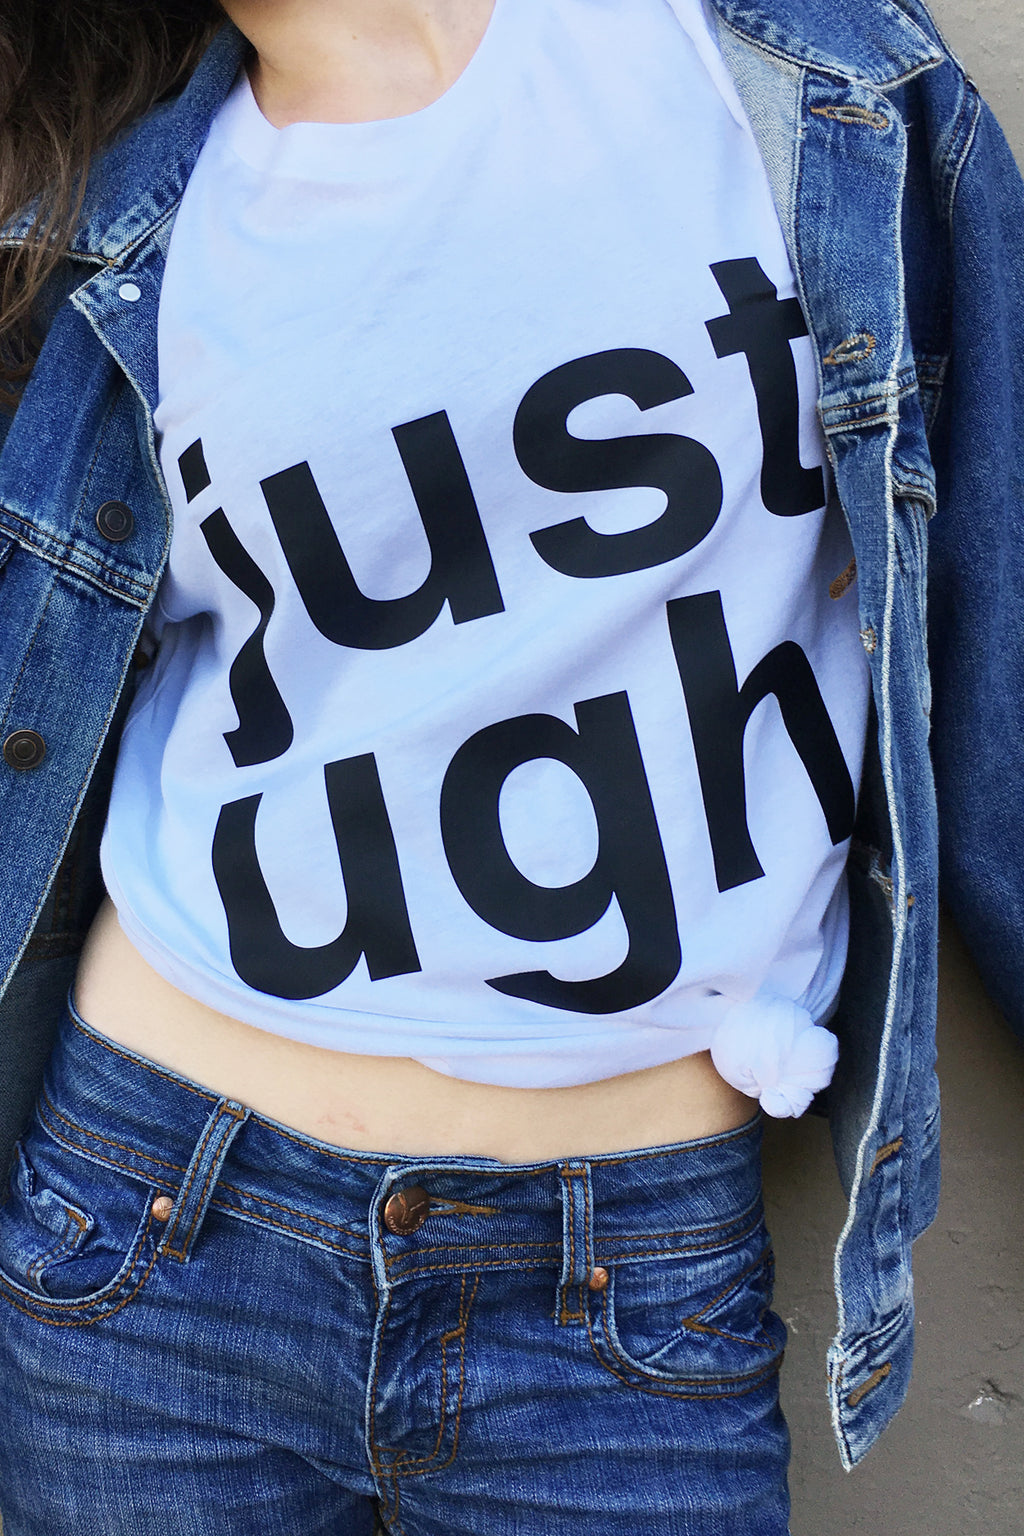 Just UGH Tee - Totally Good Time